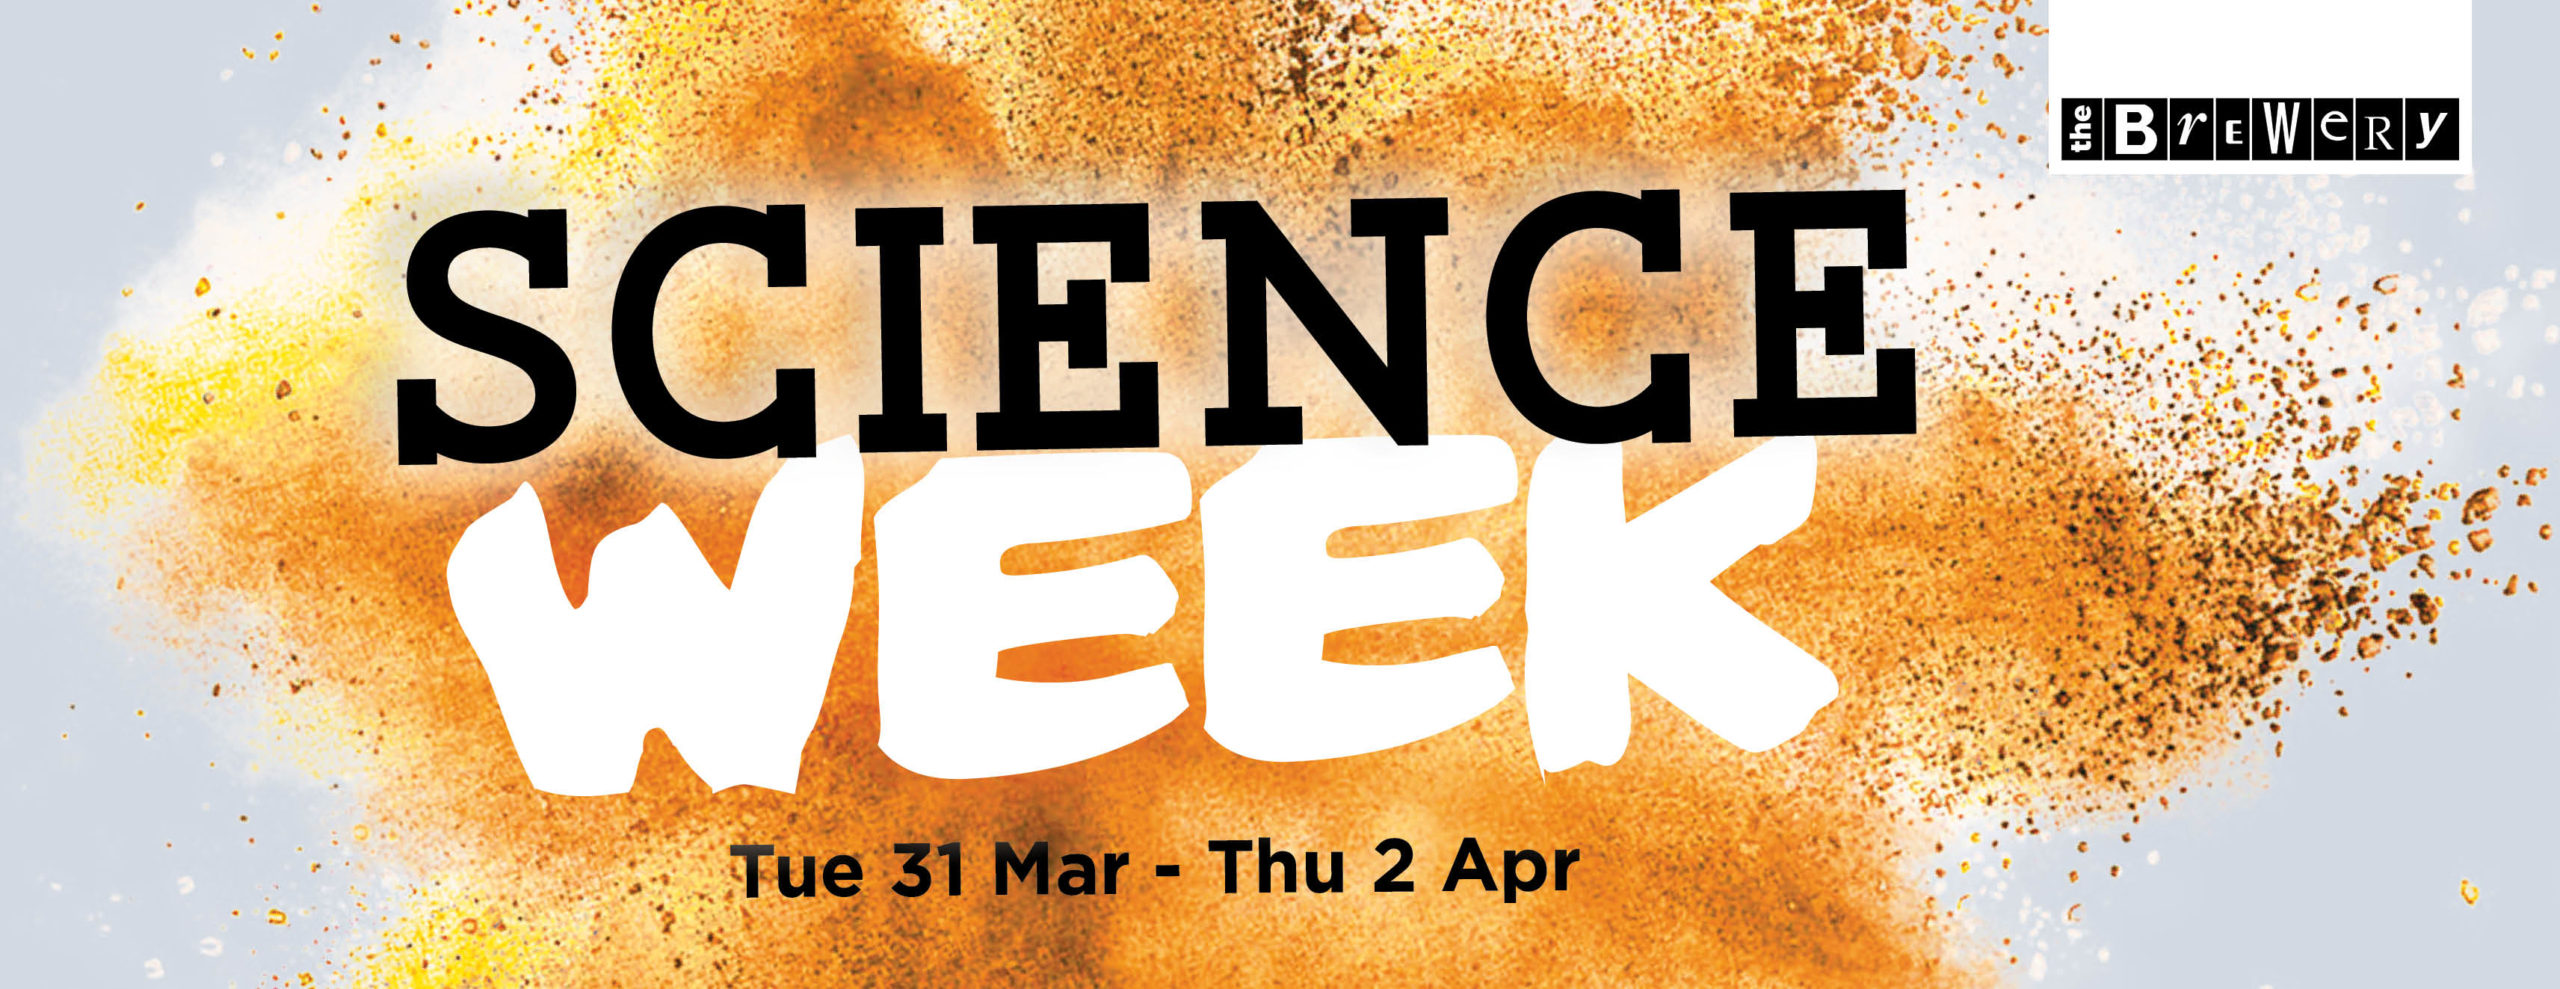 Science week banner